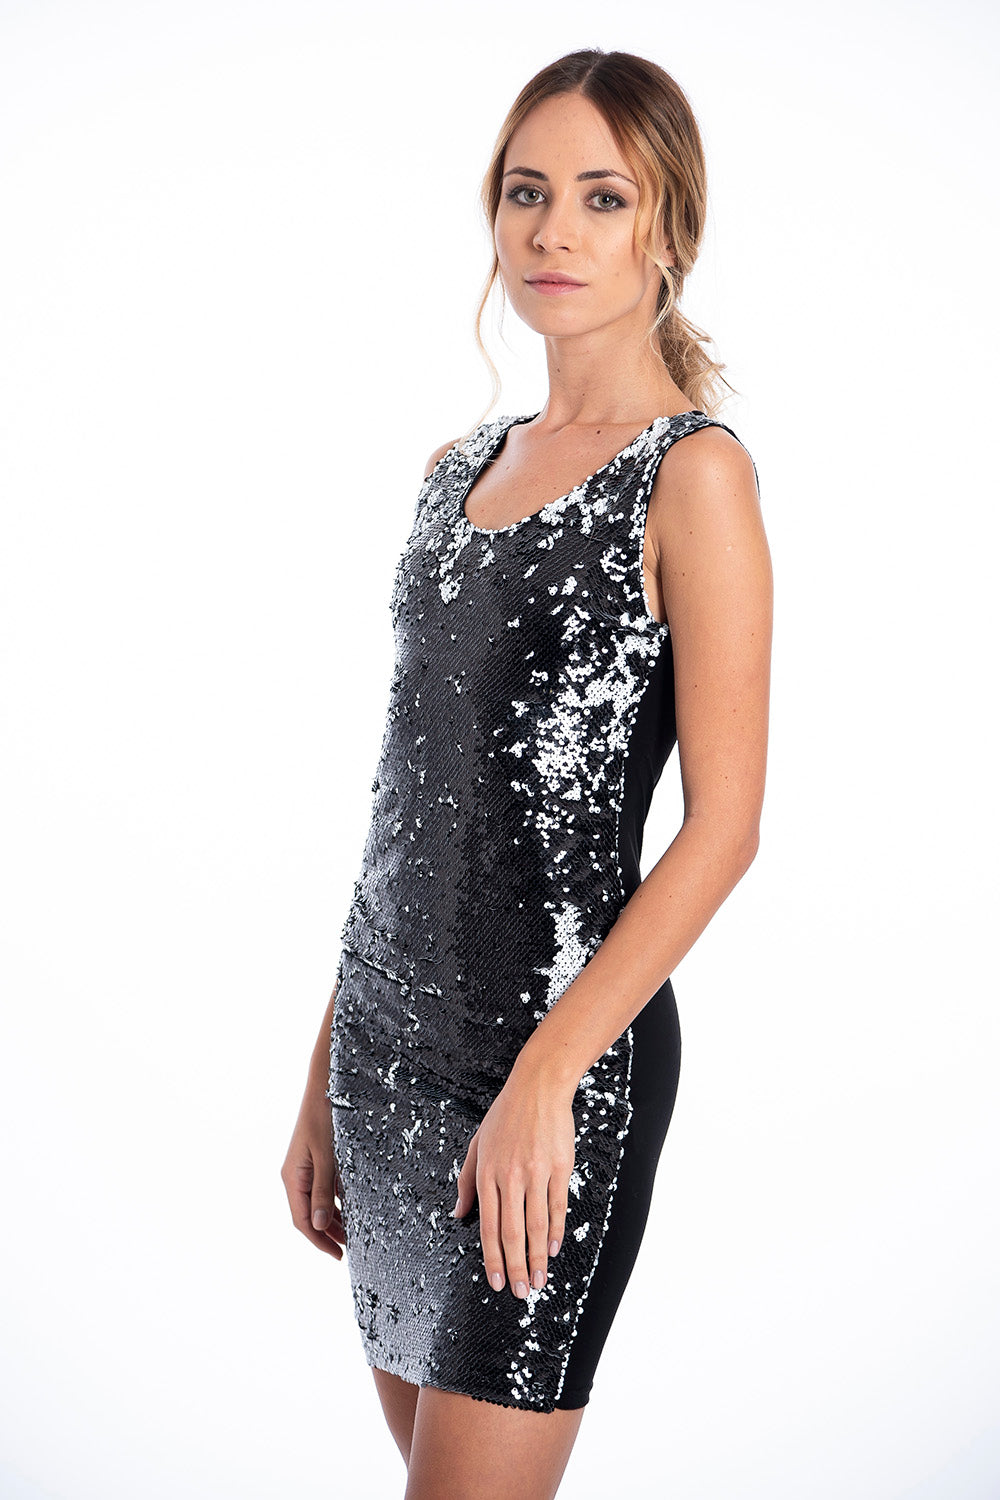 Akè black and white mini sequin dress